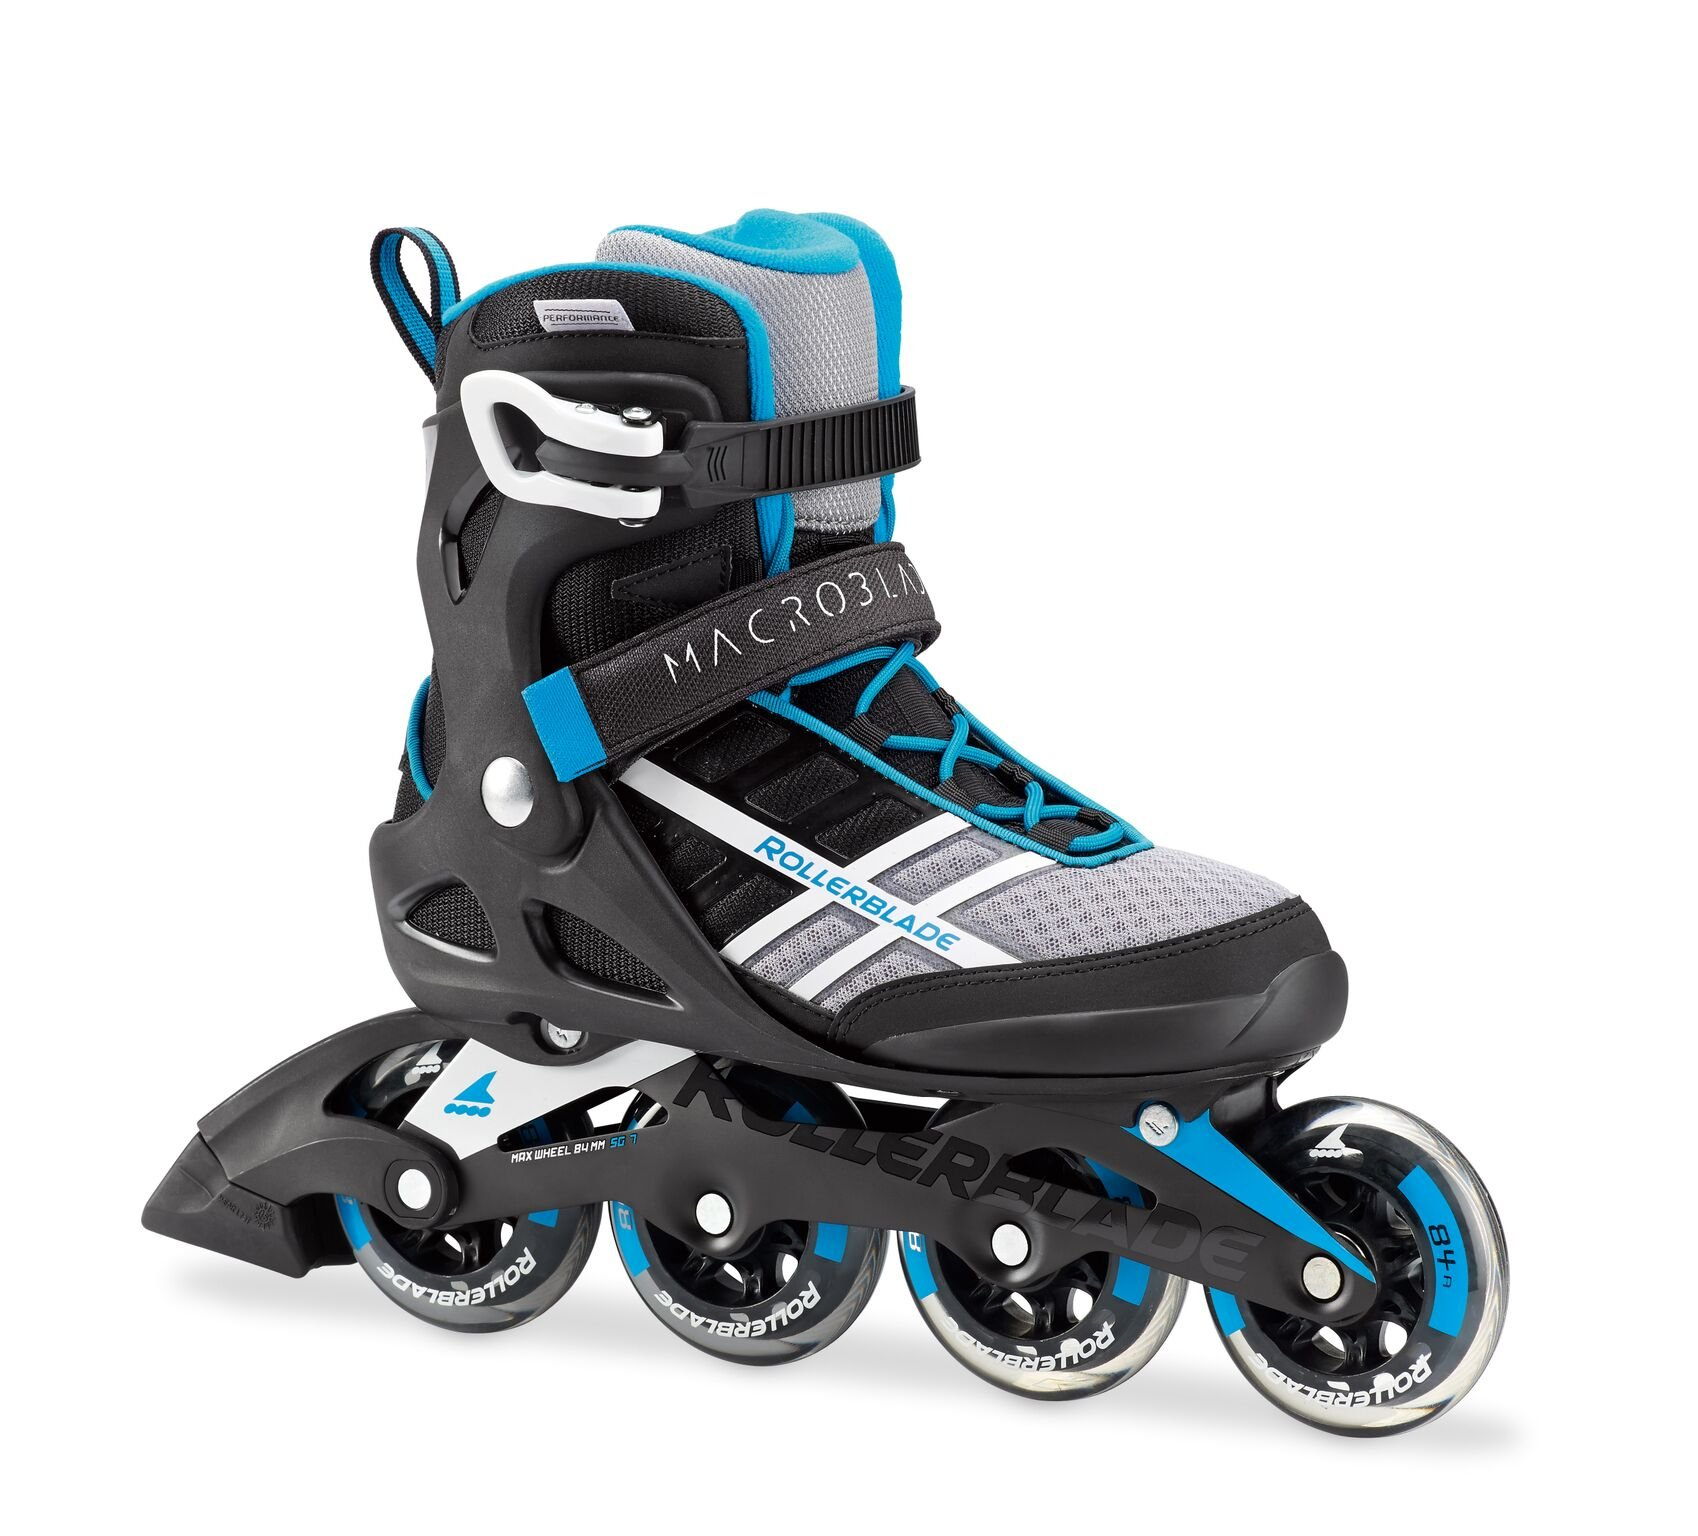 Rollerblade Macroblade 84 Womens Adult Fitness Inline Skate - White/Cyan Blue - 84 mm / 84A Wheels with SG7 Bearings - Performance Skates -US size 9, White/Cyan Blue, Size 9